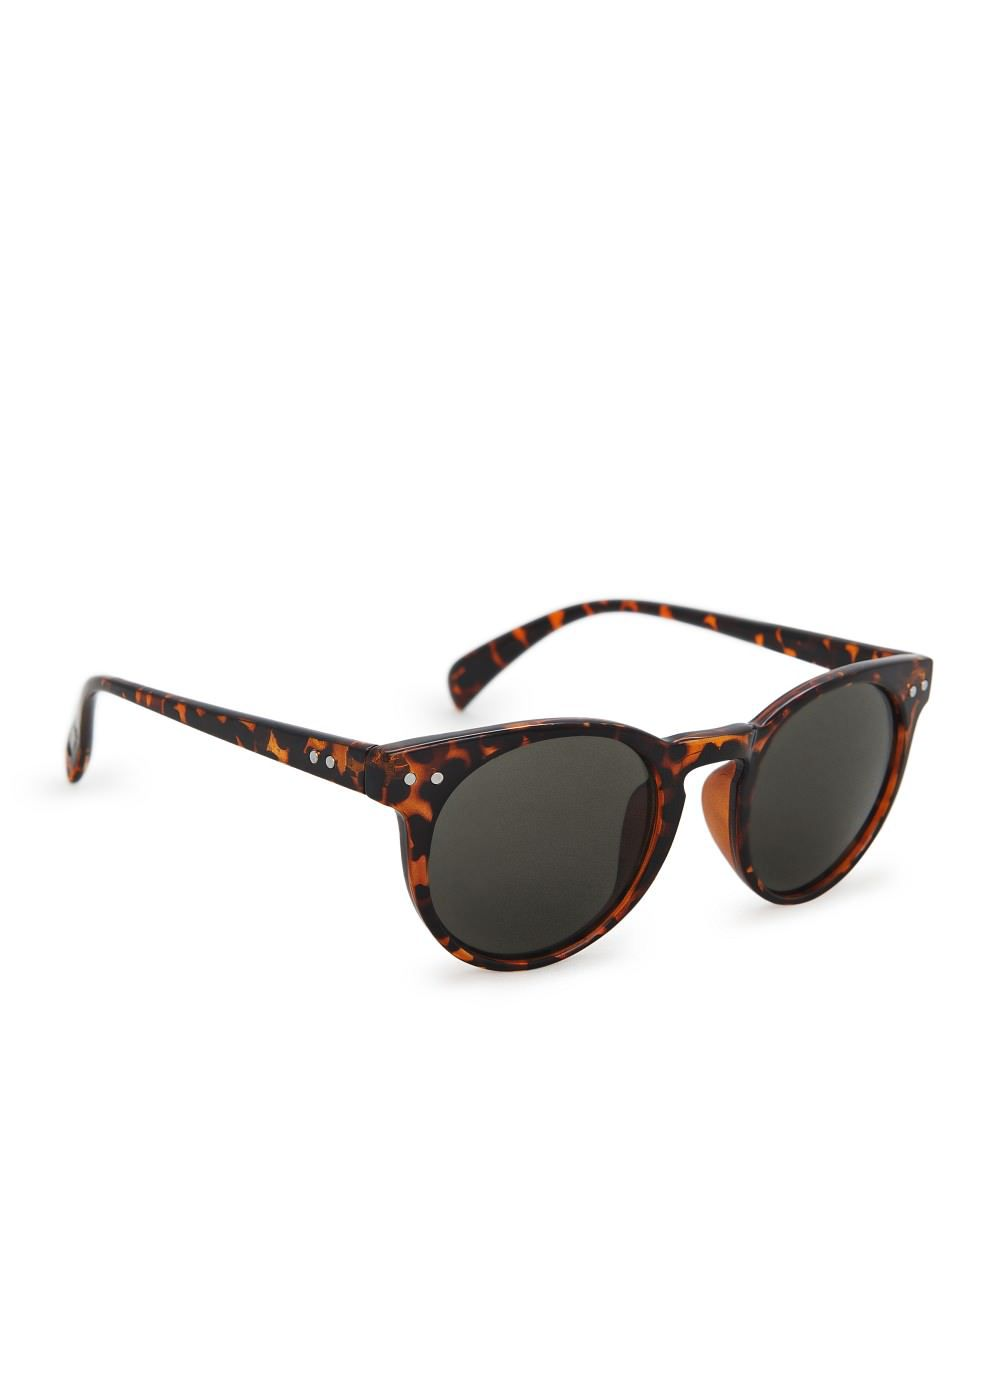 Metal applique sunglasses